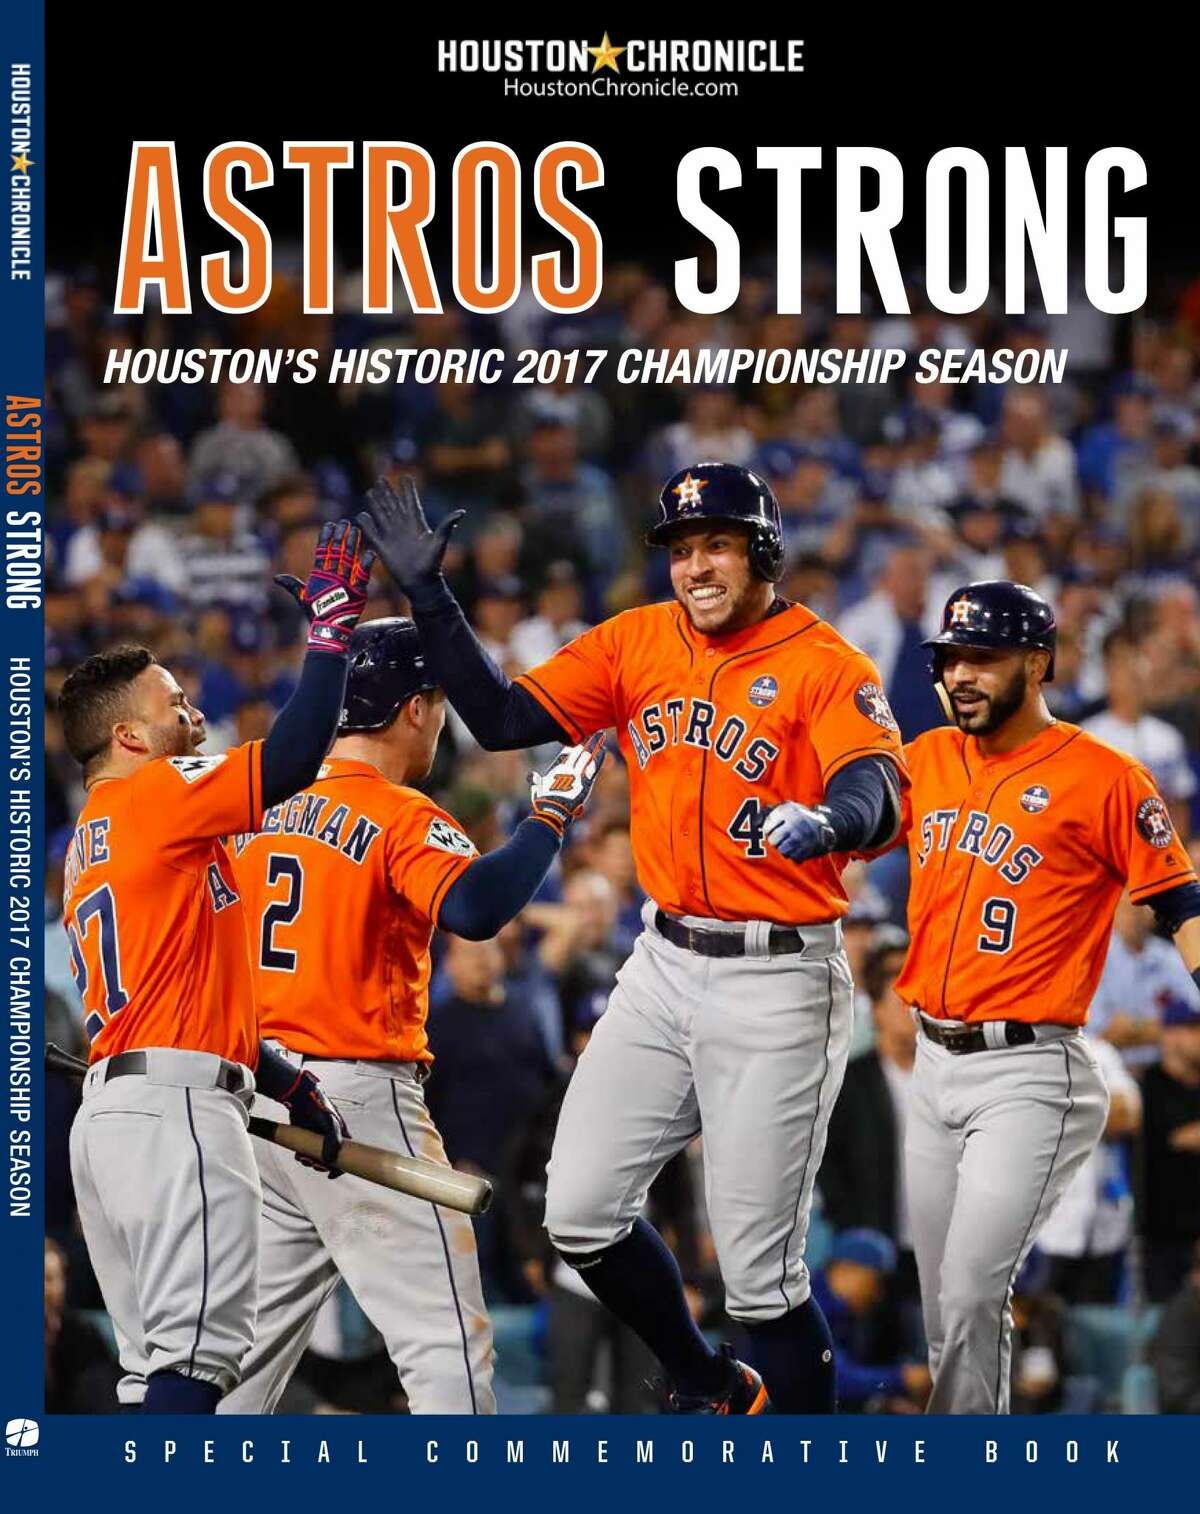 FRONT COVER: For the baseball fan looking to remember the Houston Astros' World Series season with the ultimate keepsake, the Houston Chronicle has debuted its latest book,